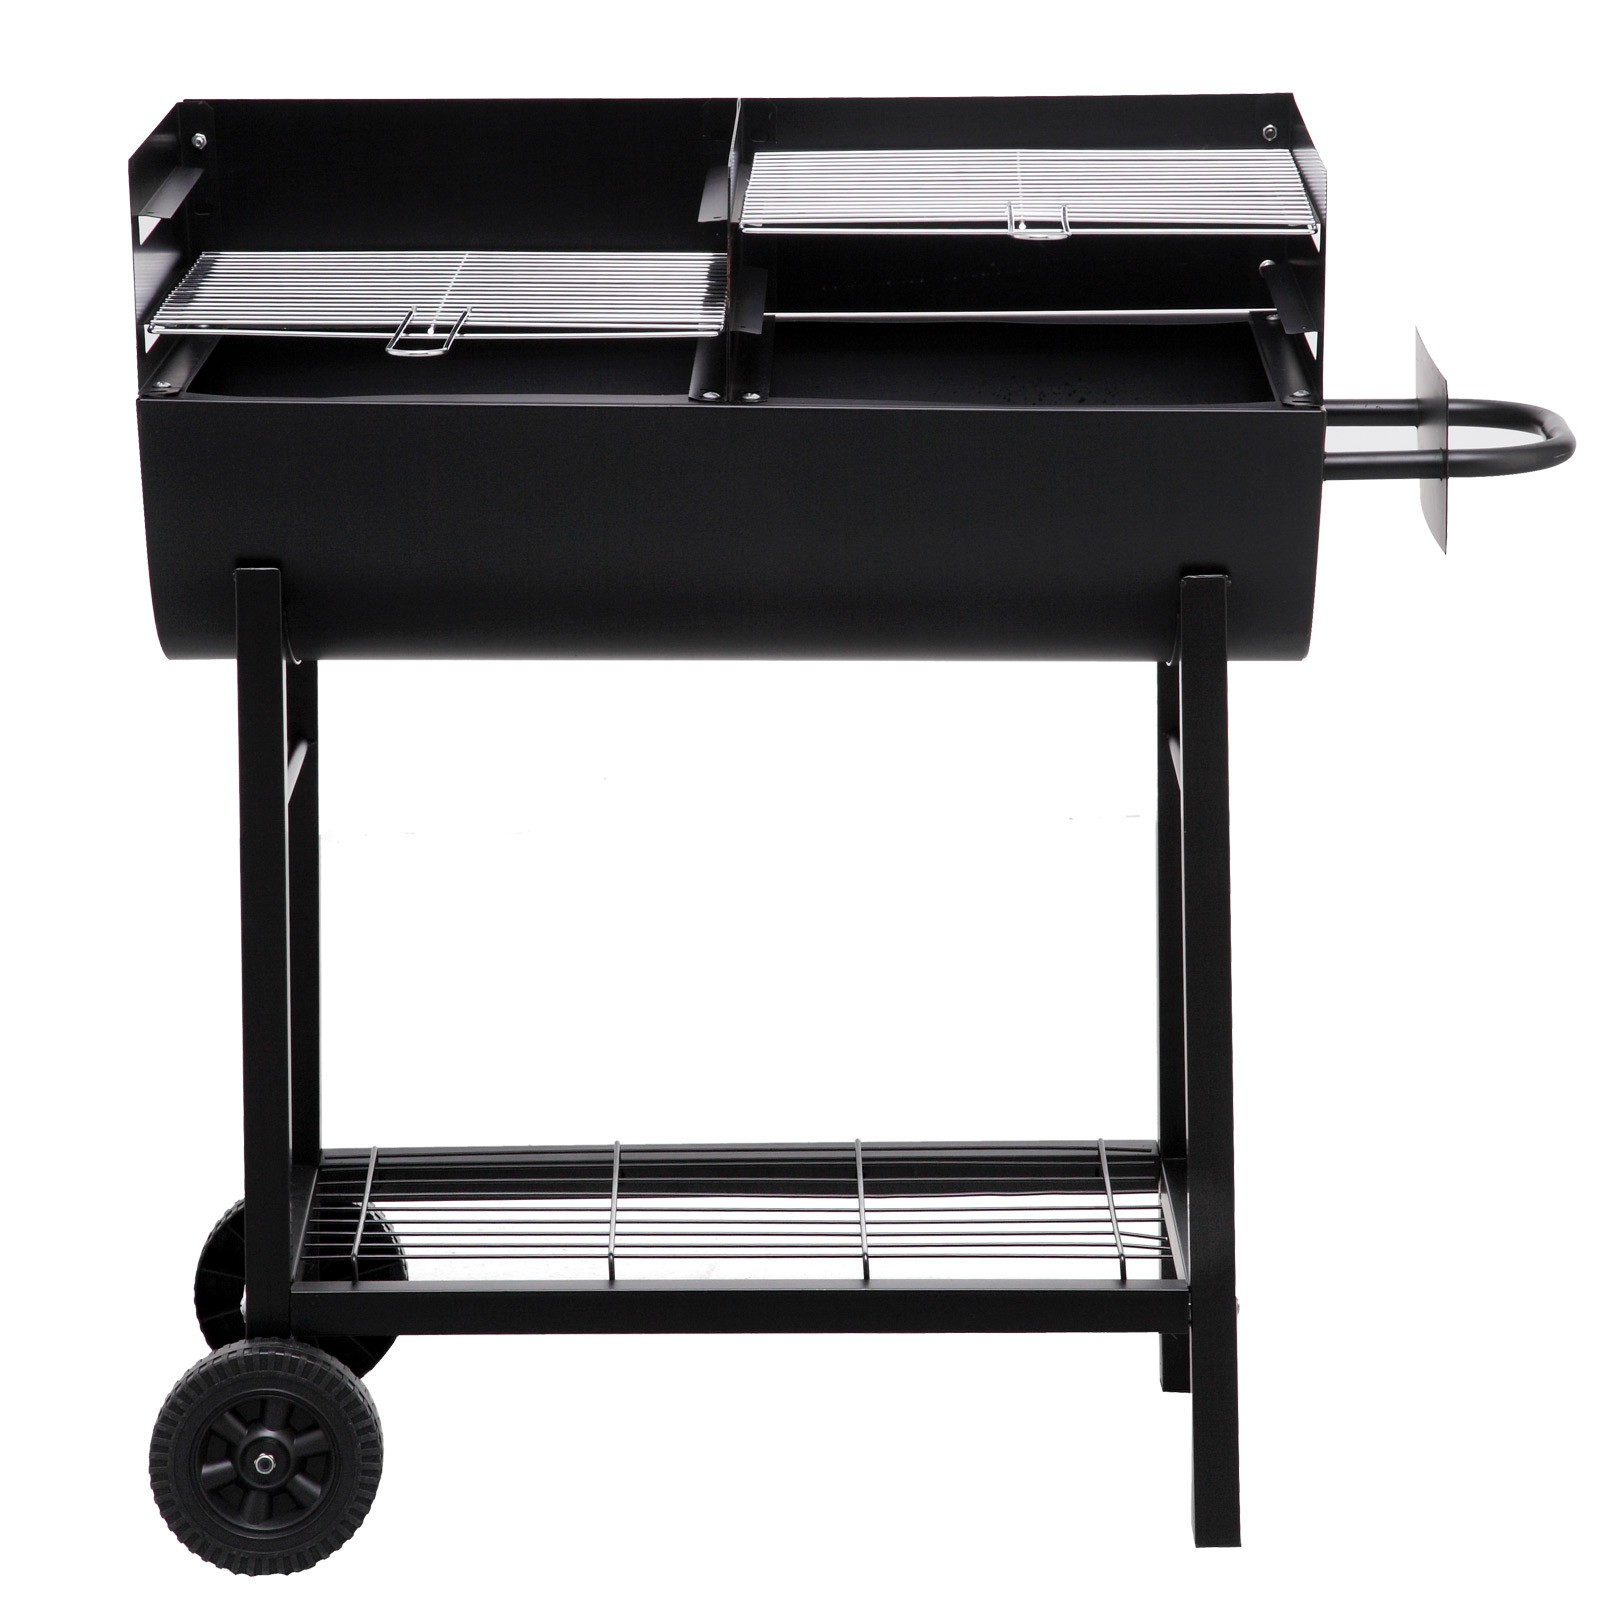 tepro holzkohlegrill grillfass grillwagen kohlengrill lfassgrill grill detroit ebay. Black Bedroom Furniture Sets. Home Design Ideas